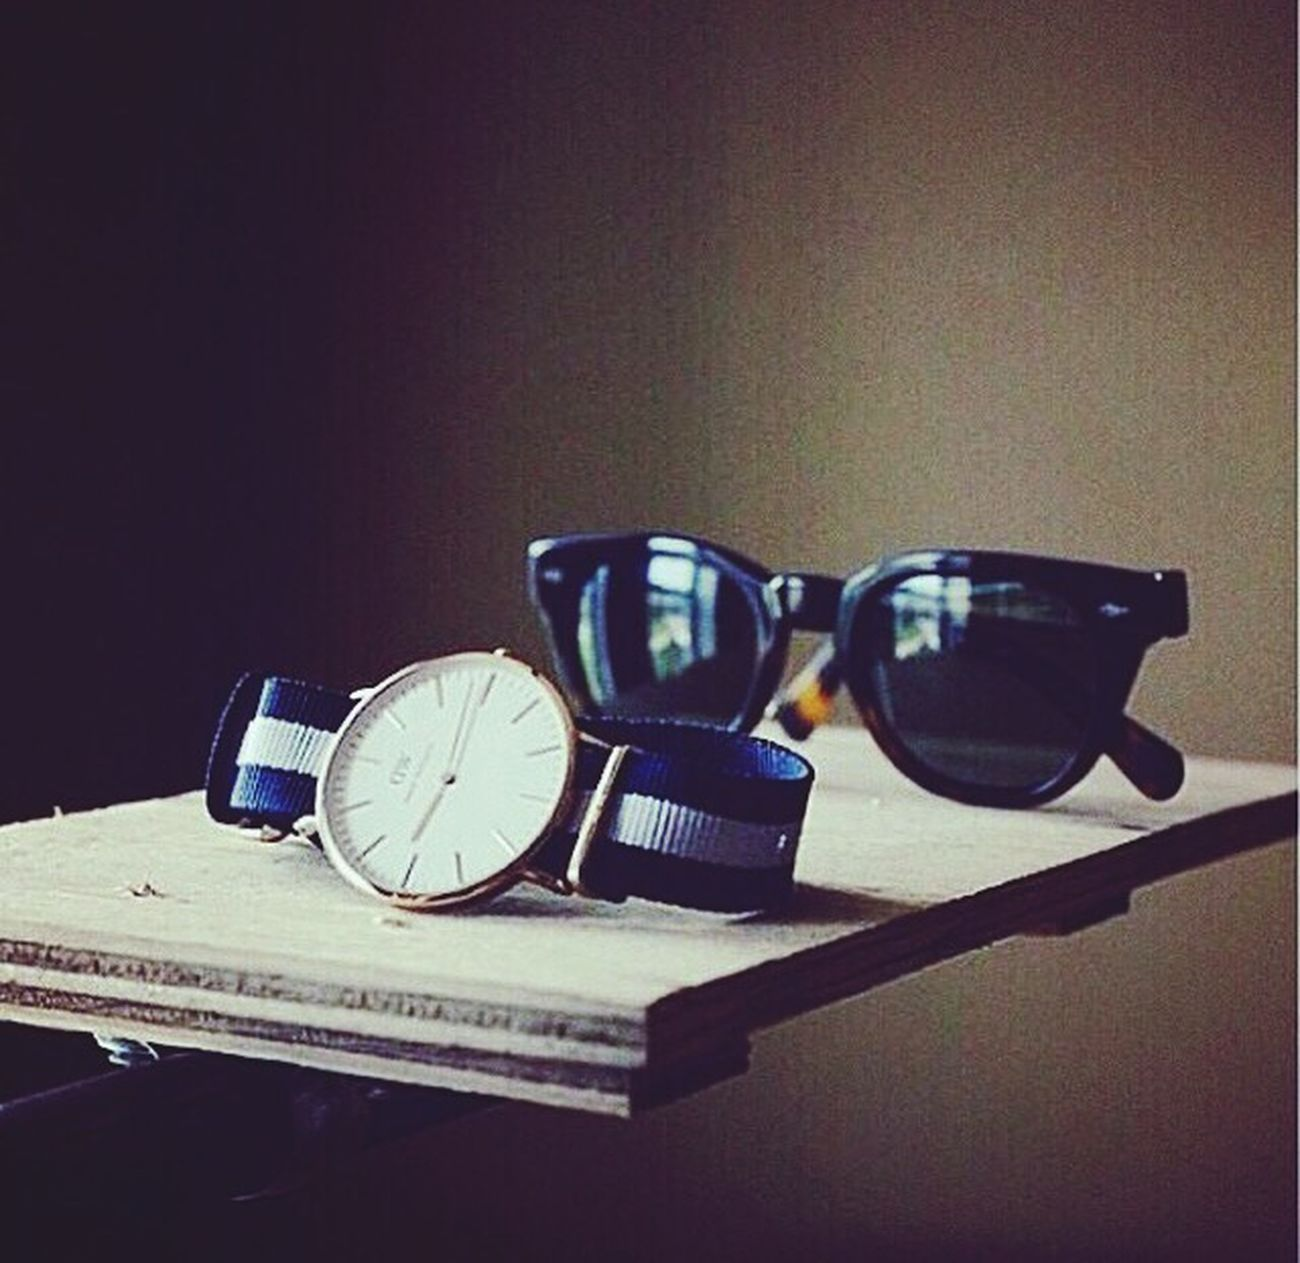 Sunglasses and watch